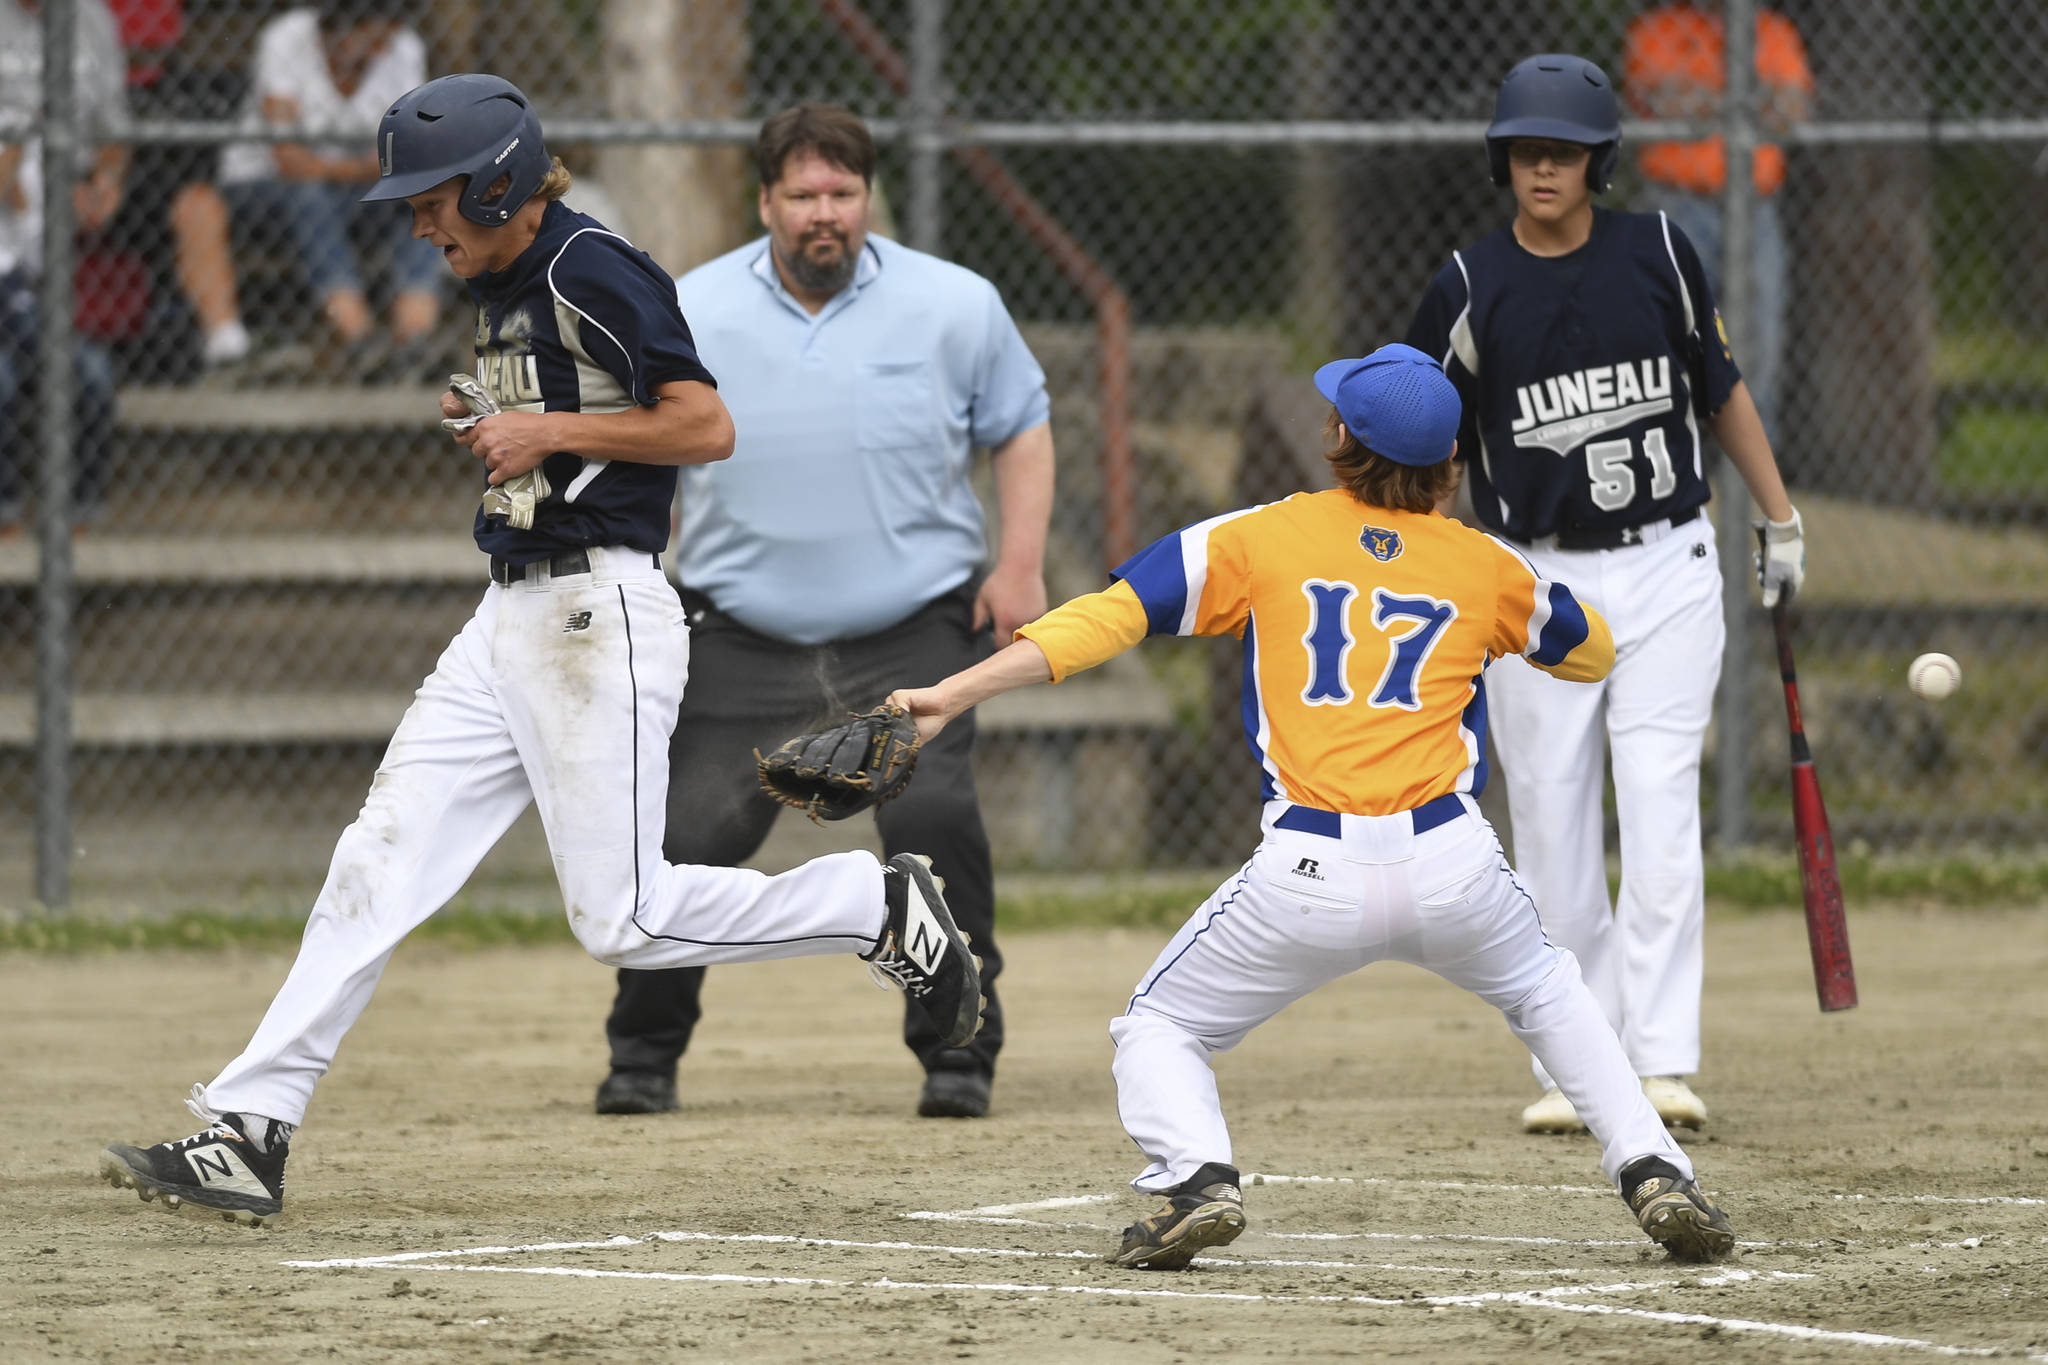 Juneau's Gabe Storie steals home on a passed ball in the first inning against Bartlett's pitcher Nelson Korshin in Legion League baseball at Adair-Kennedy Memorial Park on Friday, June 21, 2019. (Michael Penn   Juneau Empire)